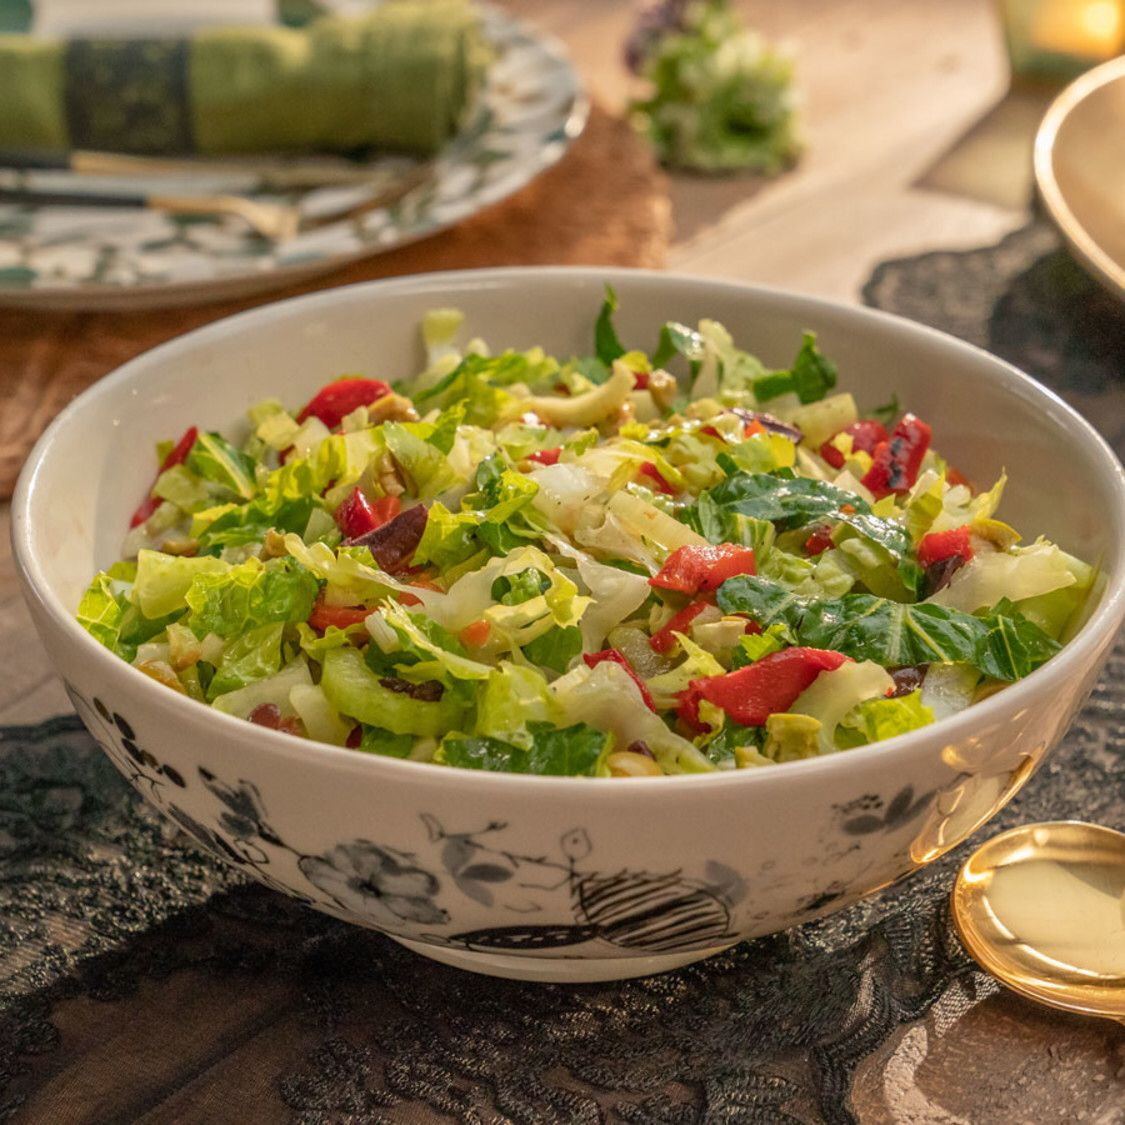 Olive And Celery Salad With Roasted Red Peppers Recipe In 2020 Stuffed Peppers Celery Salad Food Network Recipes